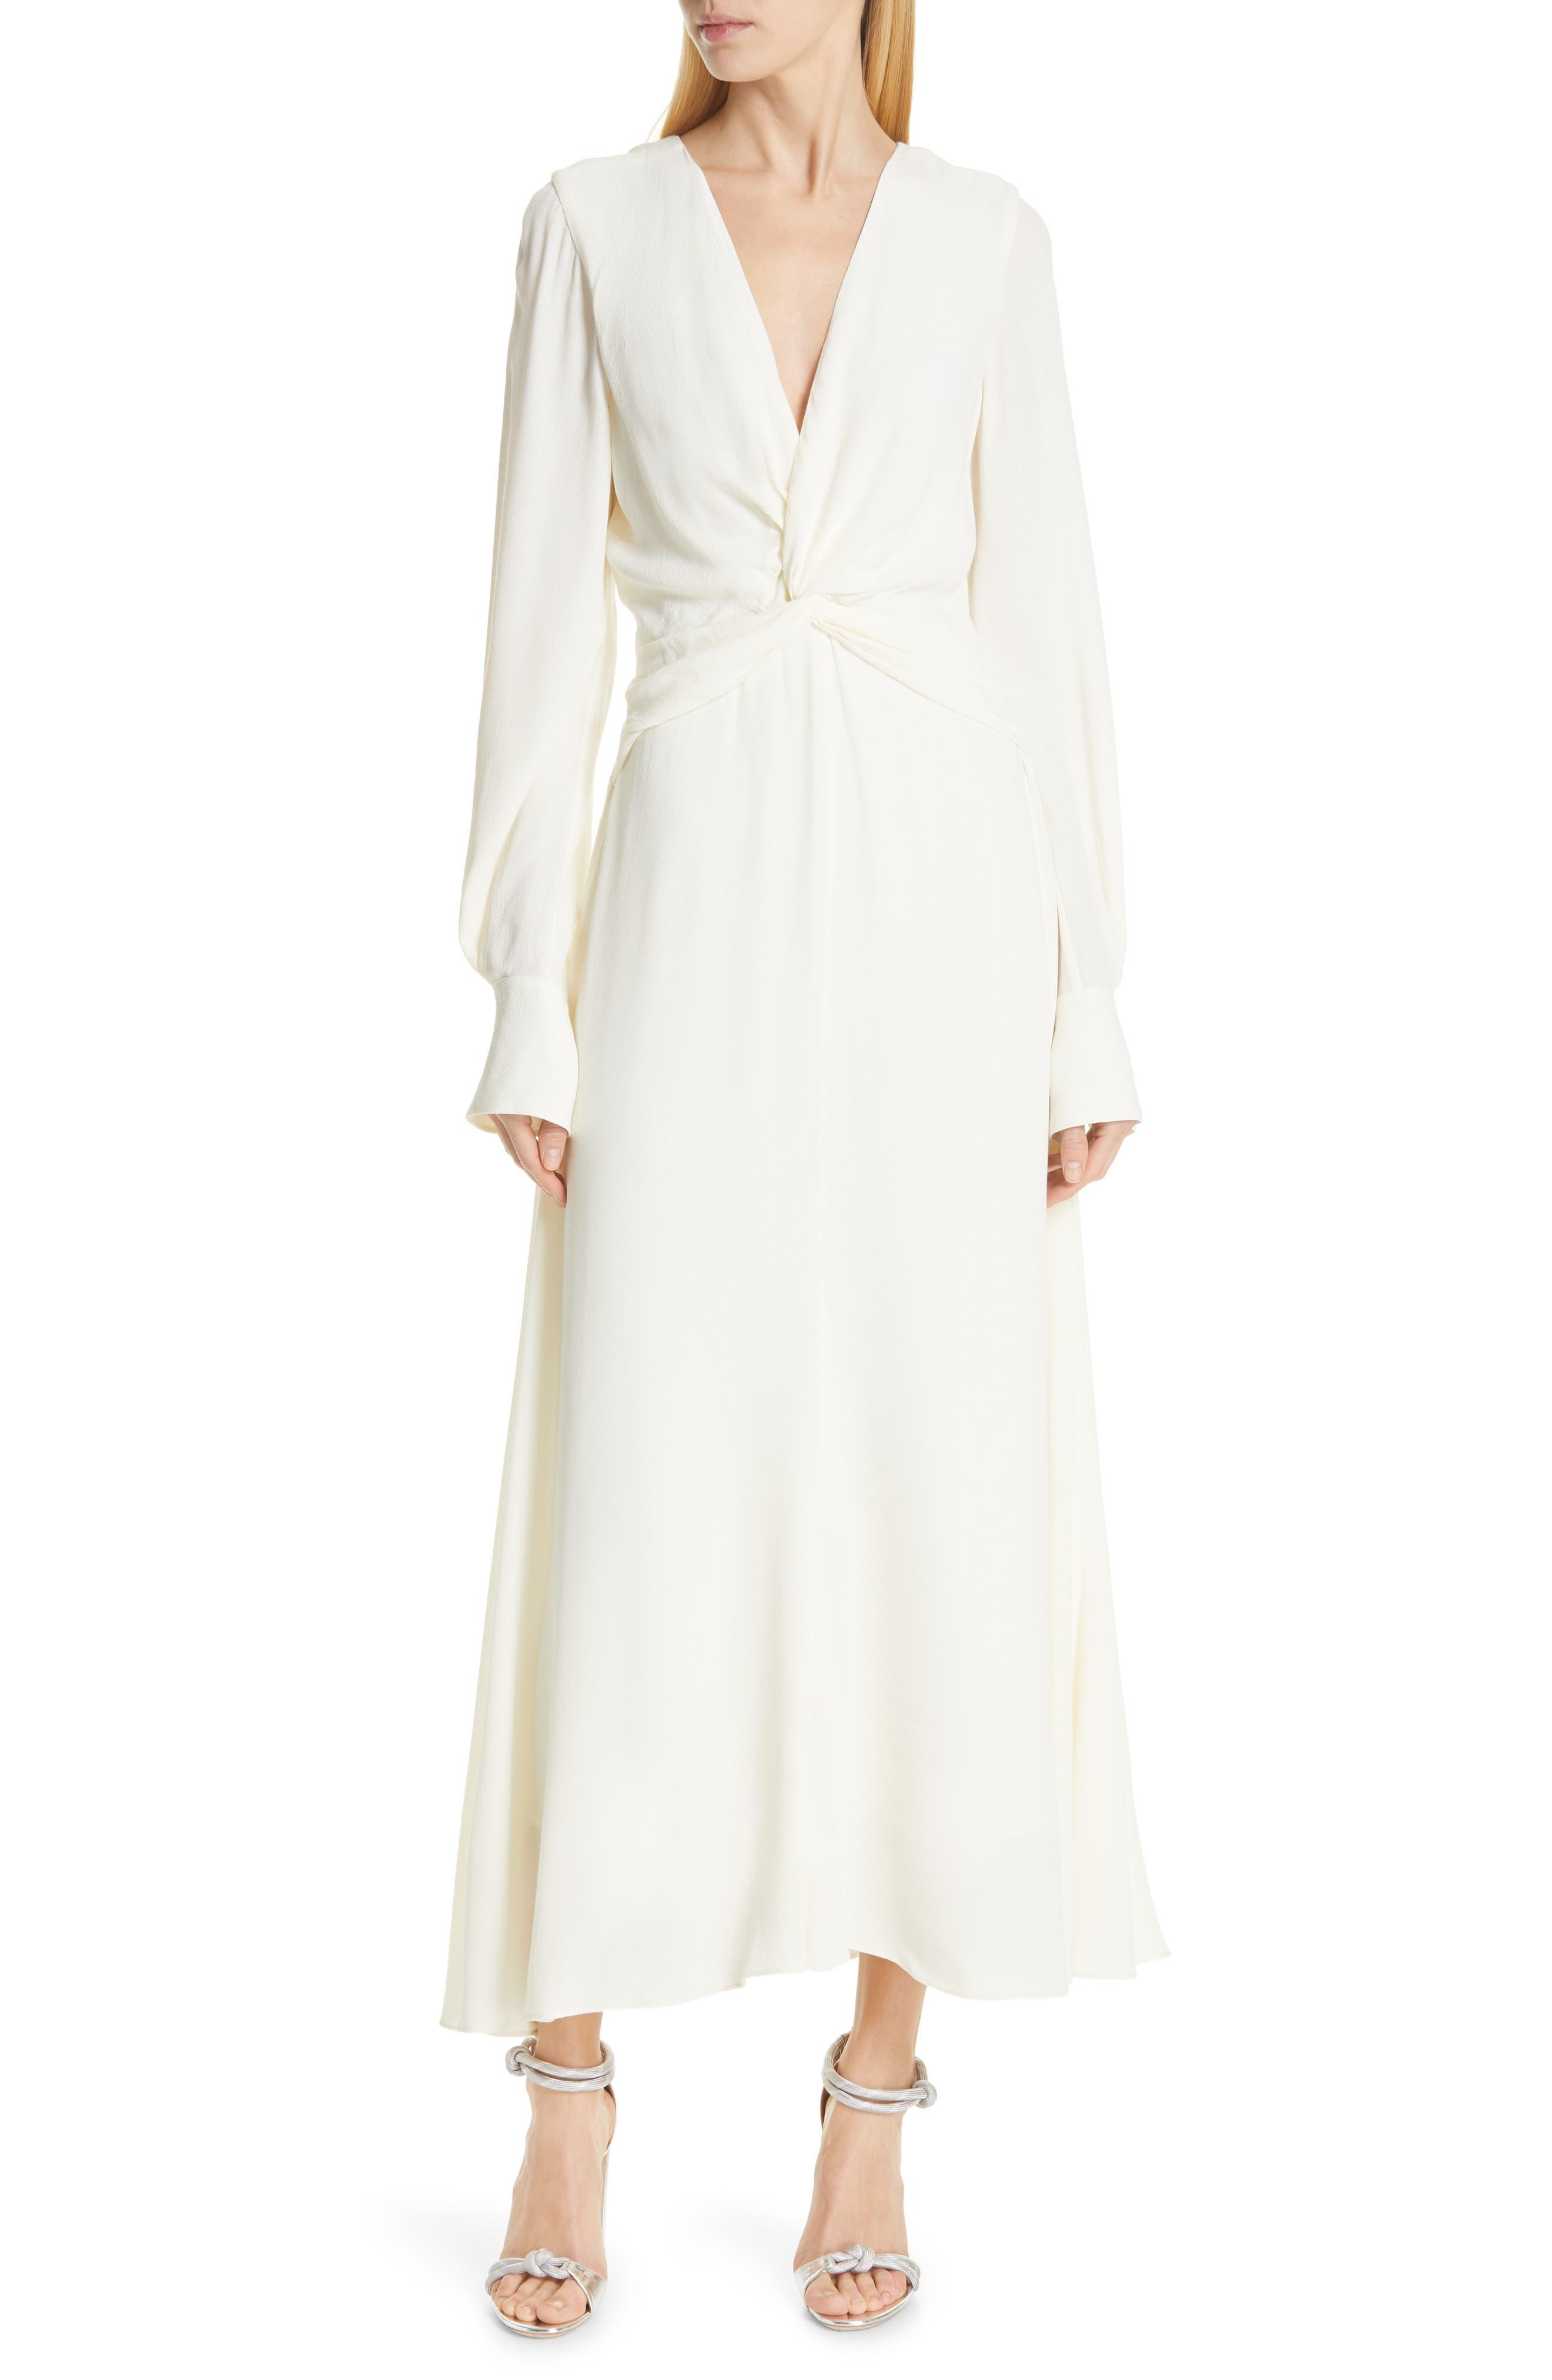 Equipment Faun Twist Front Dress, White